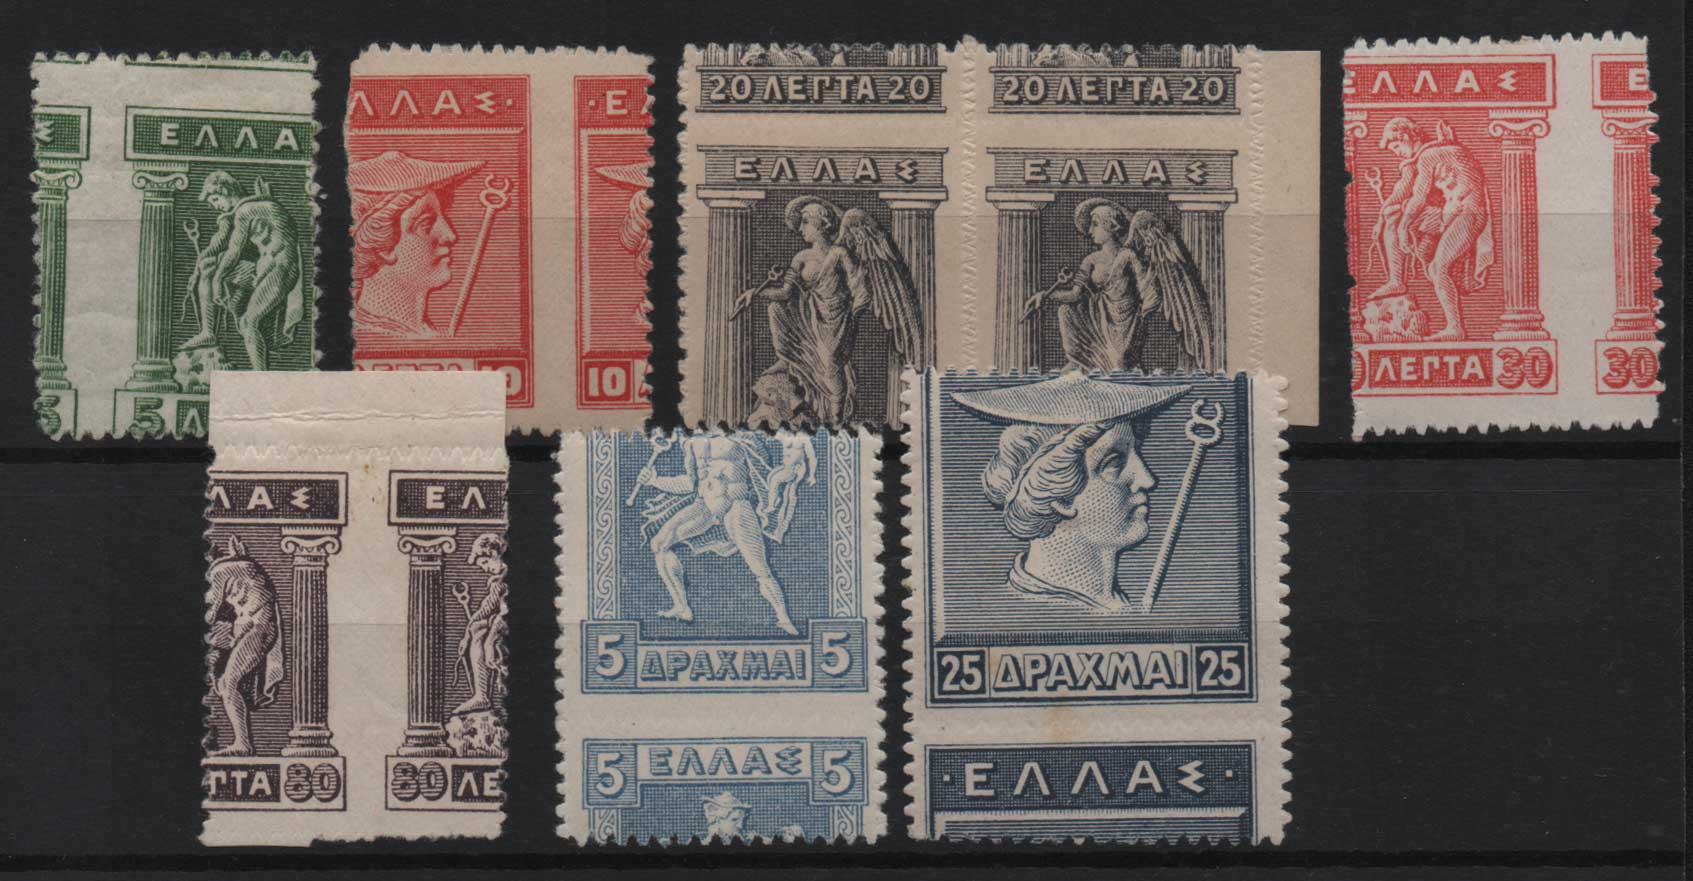 Lot 613 - -  1911 - 1923 ENGRAVED & LITHOGRAPHIC ISSUES -  Athens Auctions Public Auction 83 General Stamp Sale